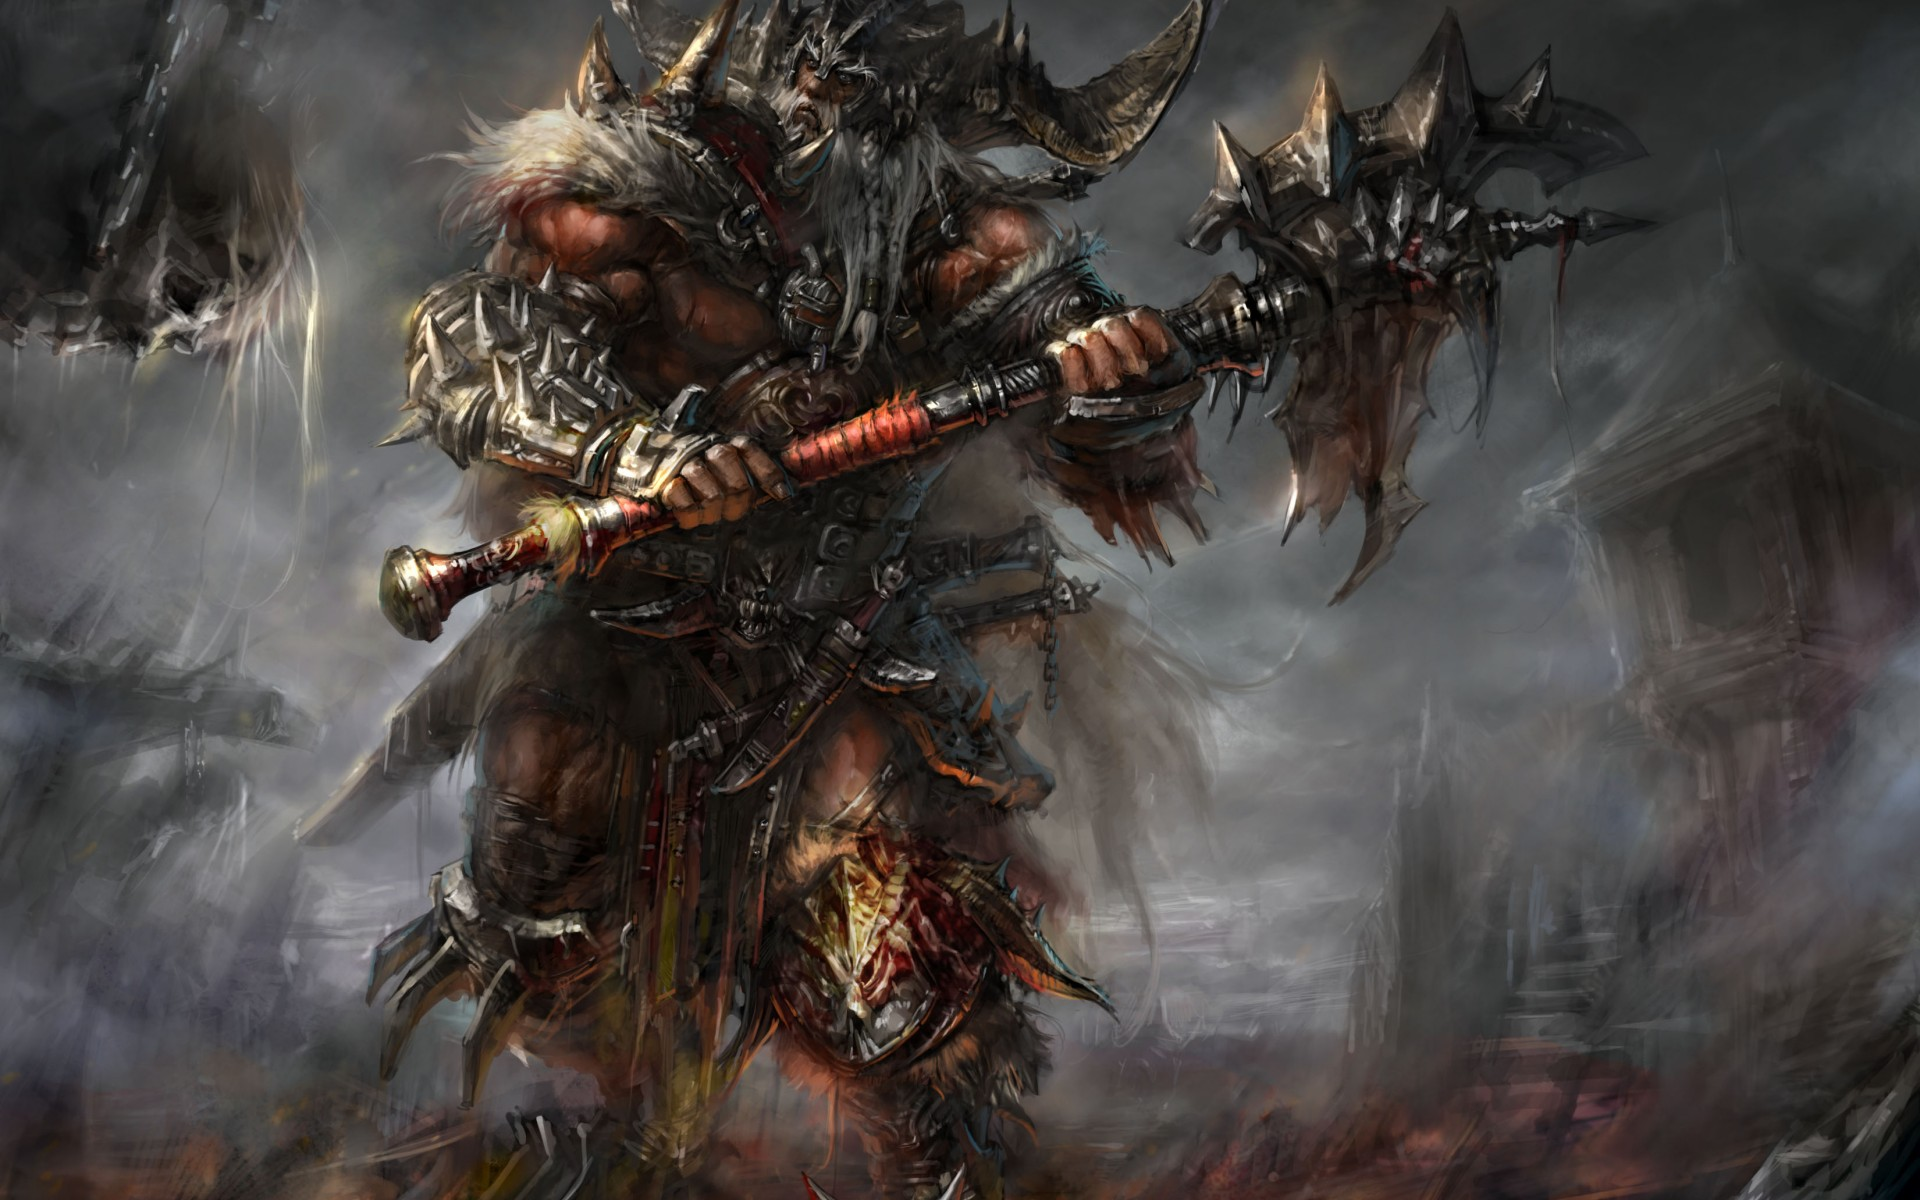 Diablo barbarian armor blood horns spikes ax undead warriors